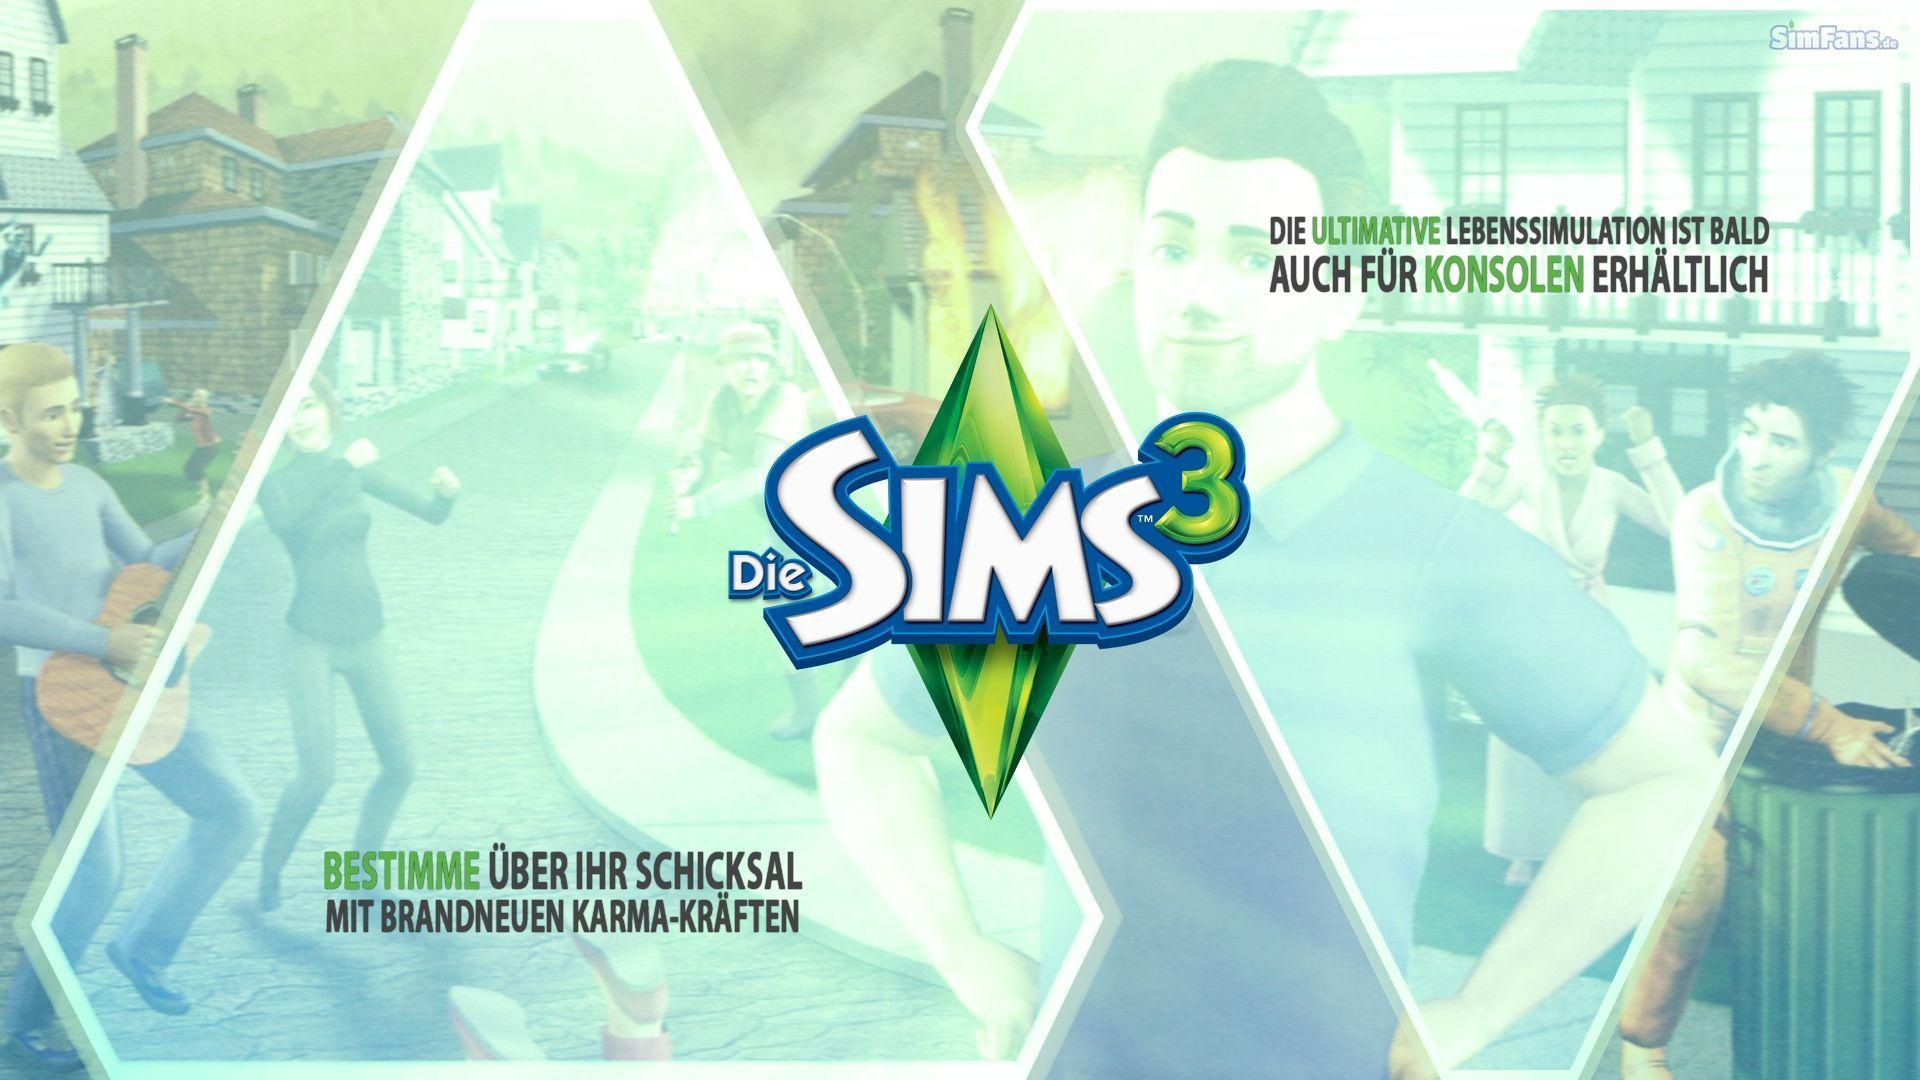 sims 3 wallpaper HD